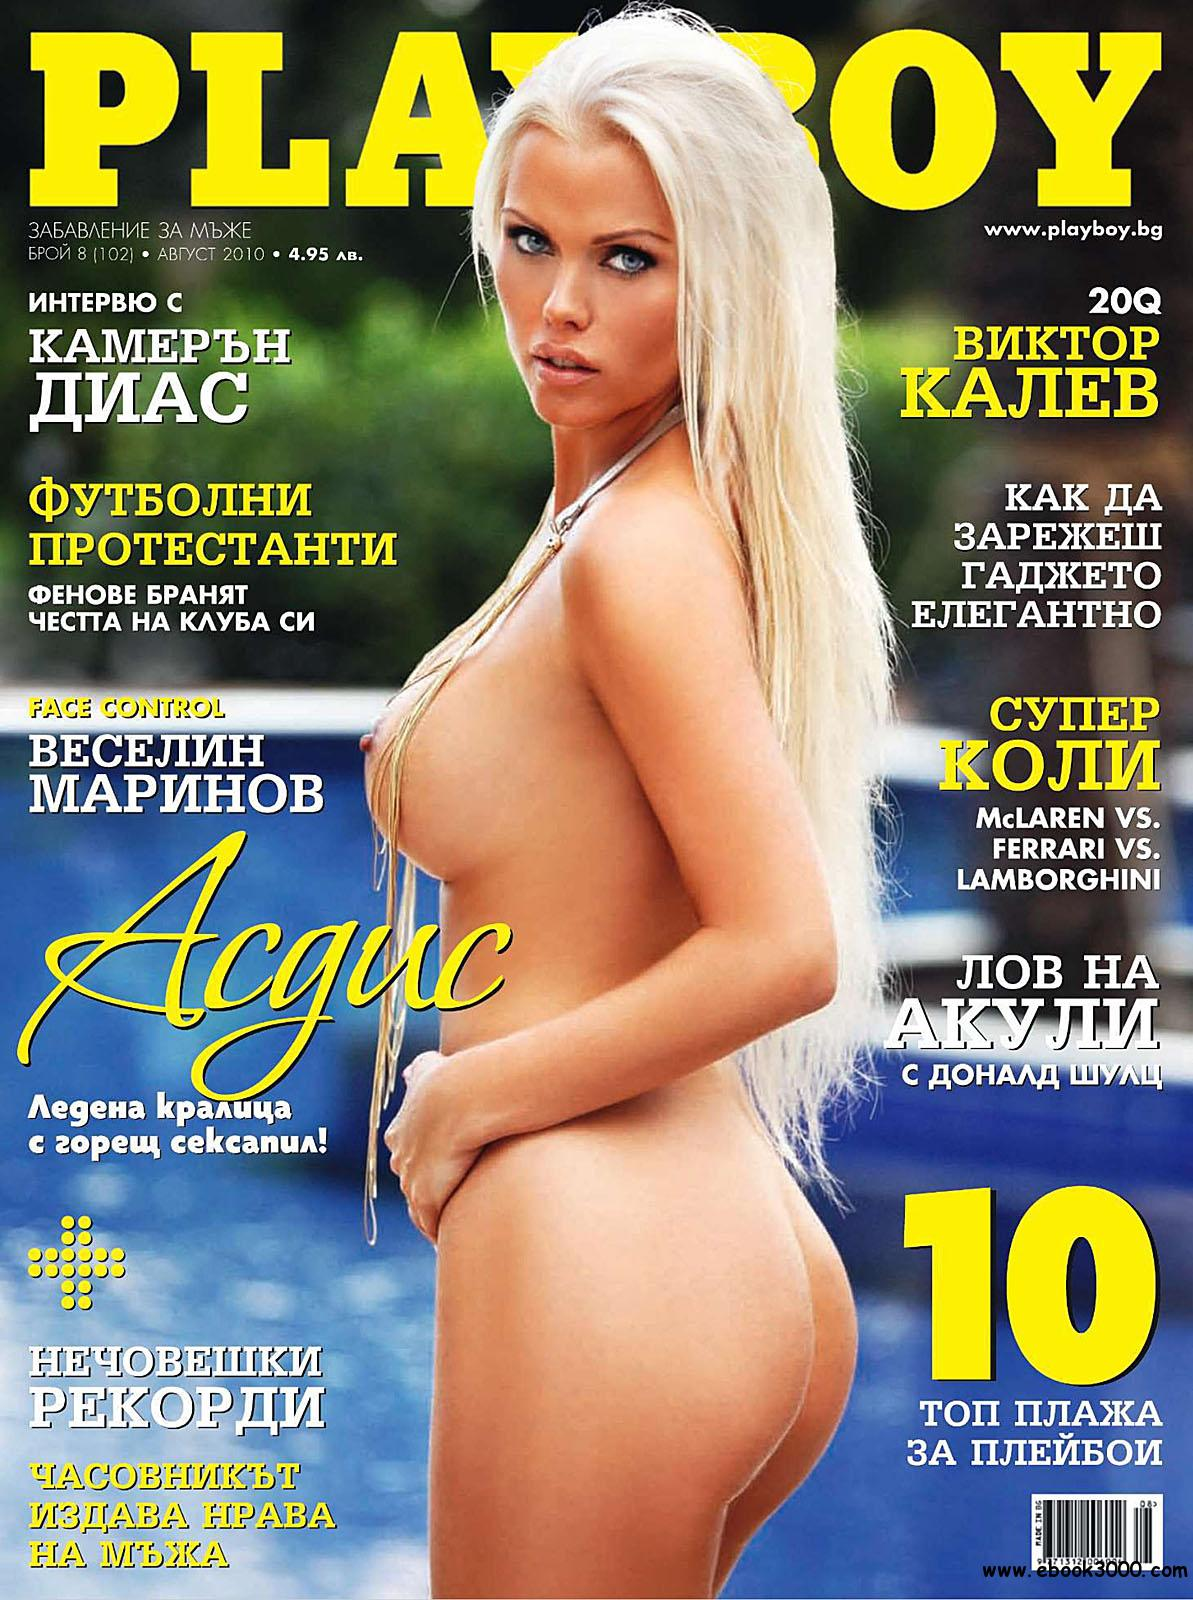 Playboy Bulgaria - August 2010 free download